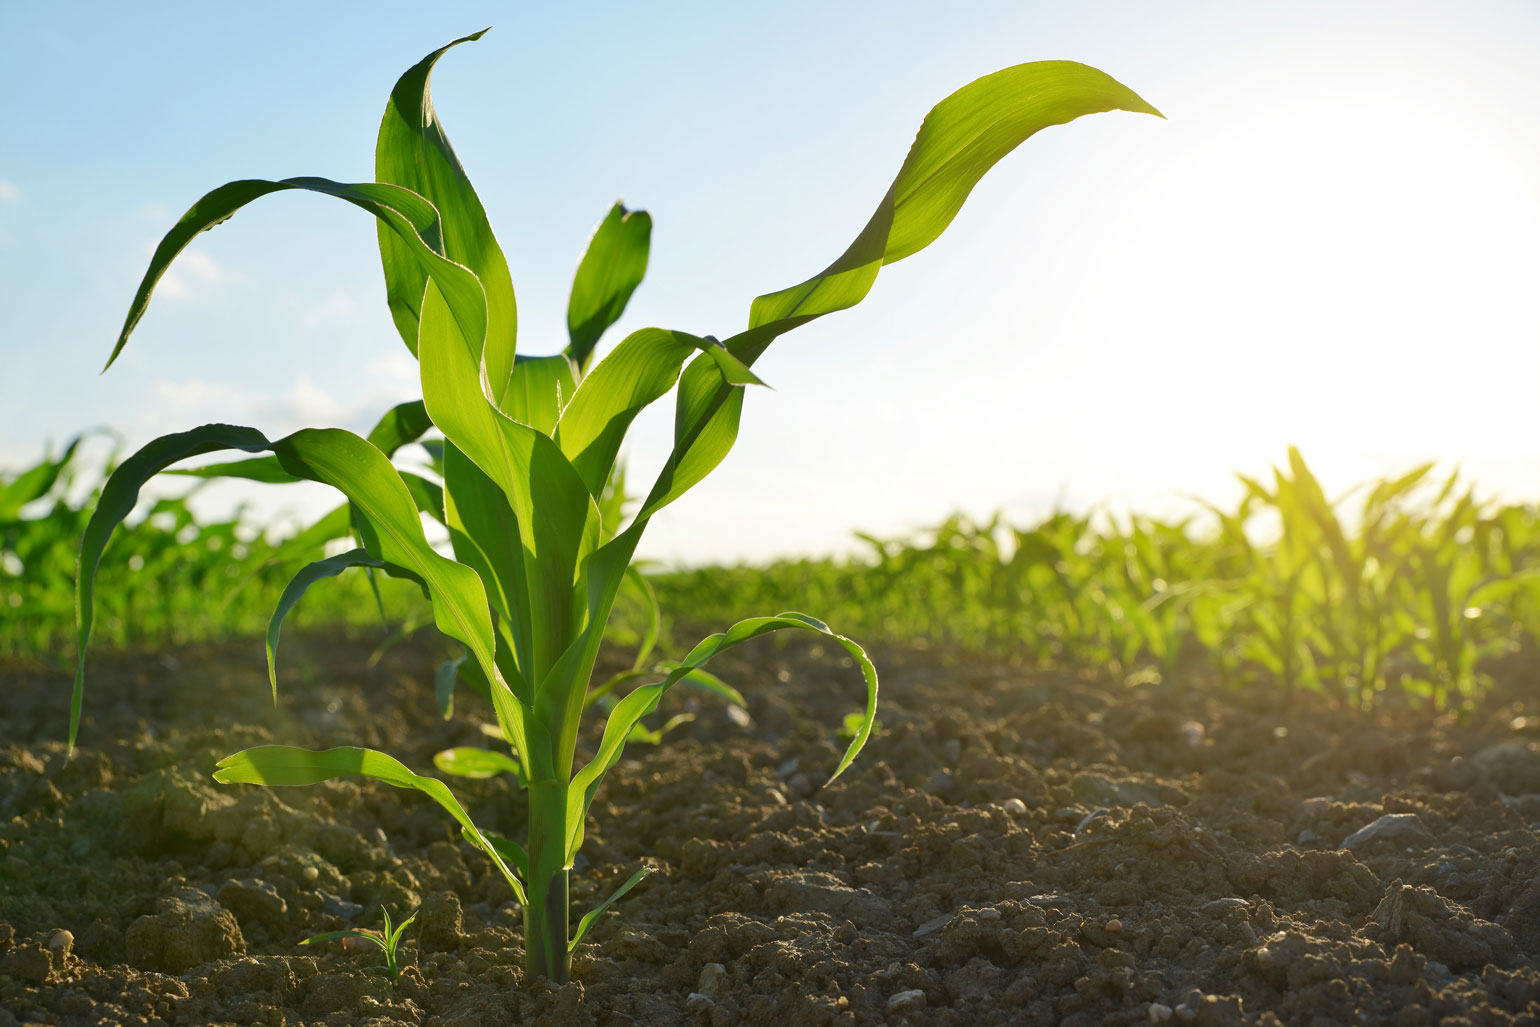 Help protect seed integrity in Canada - photo of a young corn plant growing in a field of corn plants.